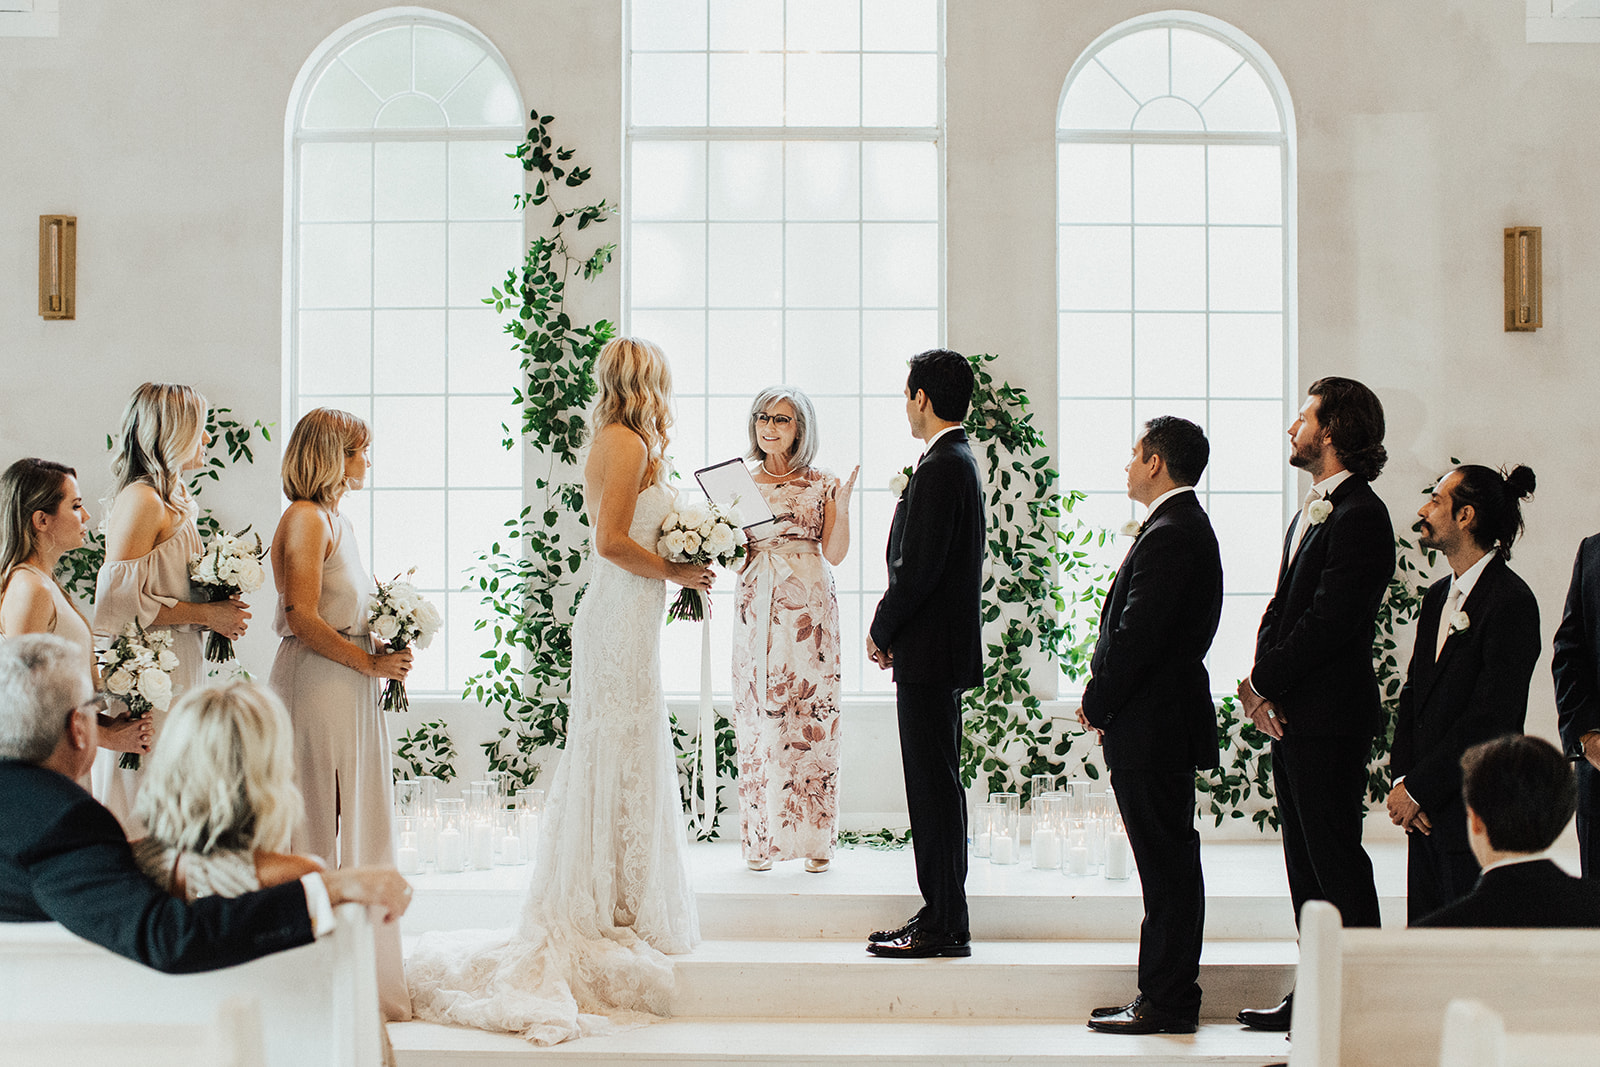 Wedding Ceremony Captured by DFW Photographer Lauren Nicole